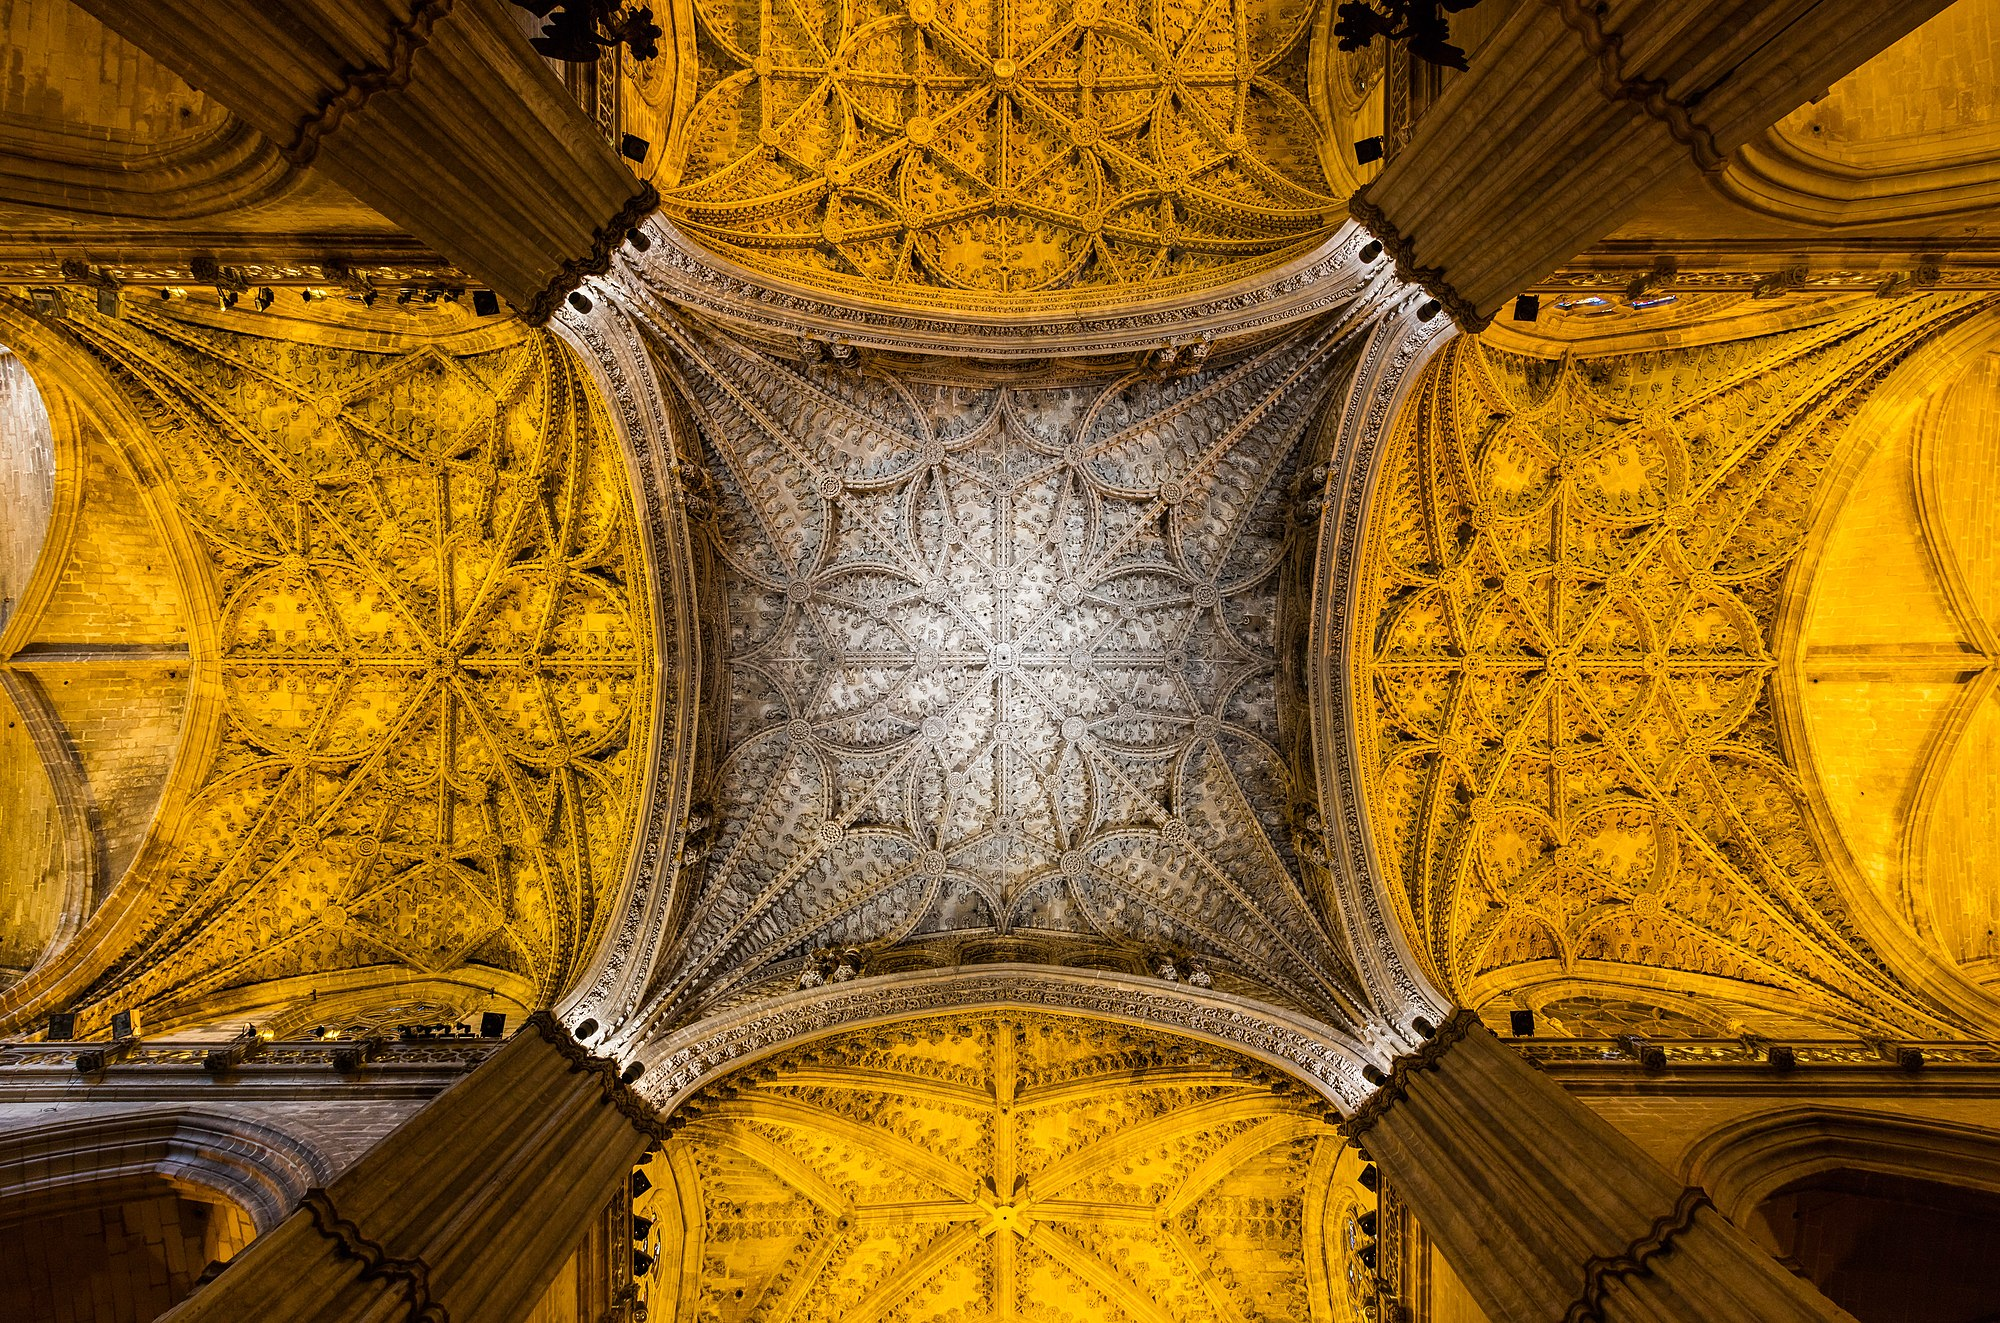 Bottom view of the crossing of the Roman Catholic cathedral of Seville, Seville, Spain. The temple is since 1987 a World Heritage Site according to the by UNESCO, is the largest Gothic cathedral and the third-largest church in the world. When it was completed, at the beginning of the 16th century, it became the successor of Hagia Sophia as the largest cathedral in the world, a title the Byzantine church had held for nearly a thousand years. The cathedral is also the burial site of Christopher Columbus.